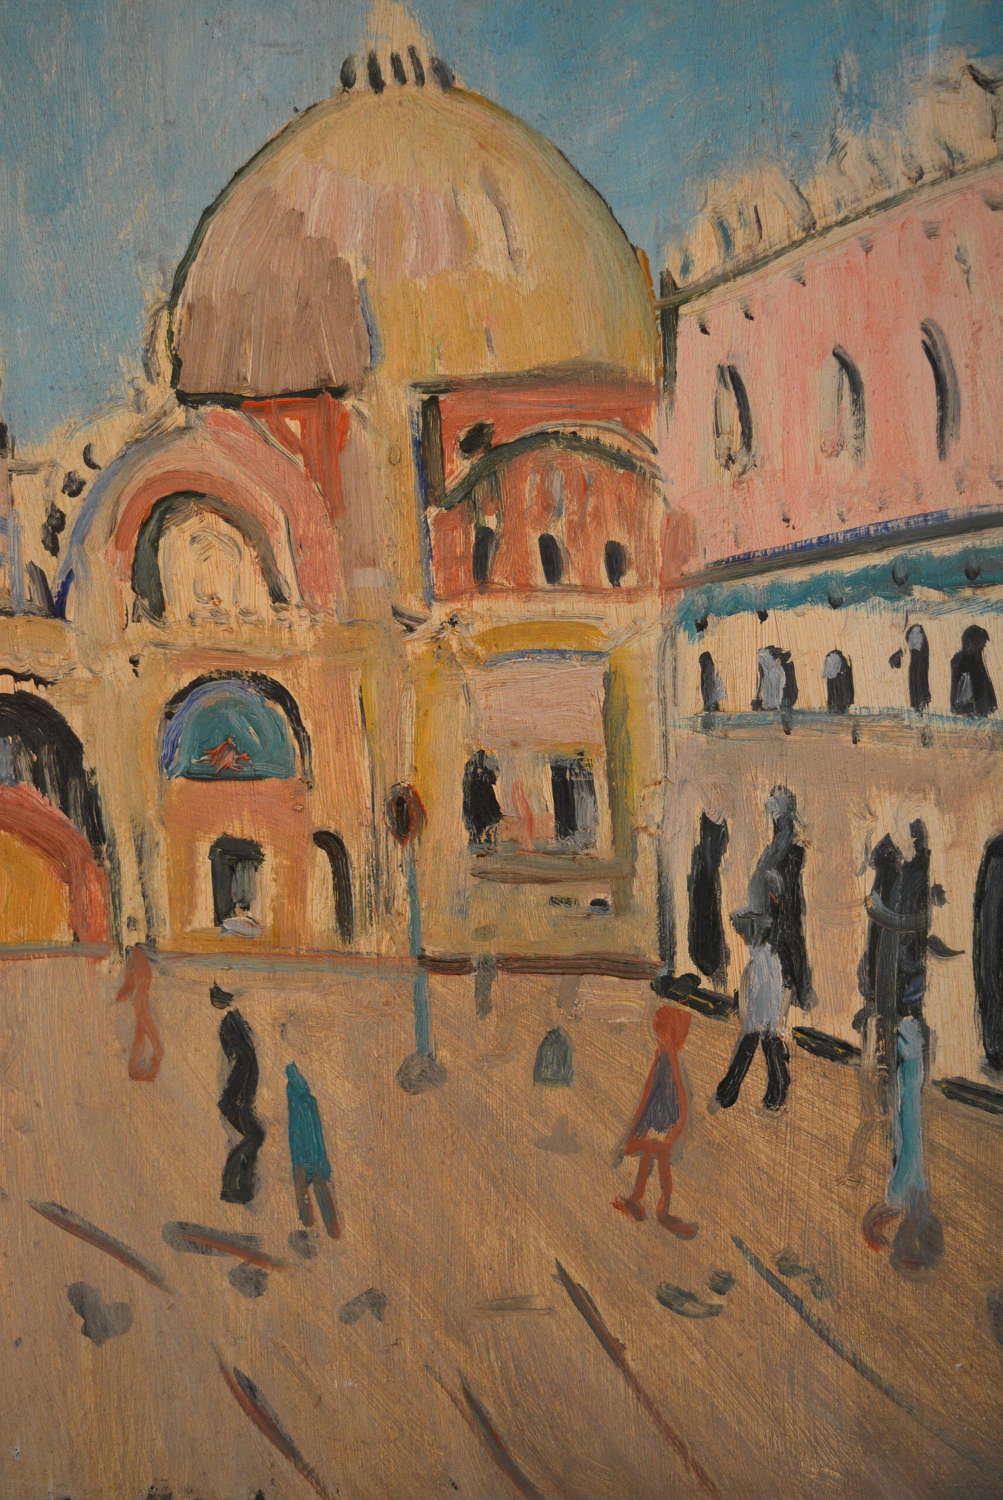 OIL ON CANVAS OF ST MARKS SQUARE AFTER IRMA STERN